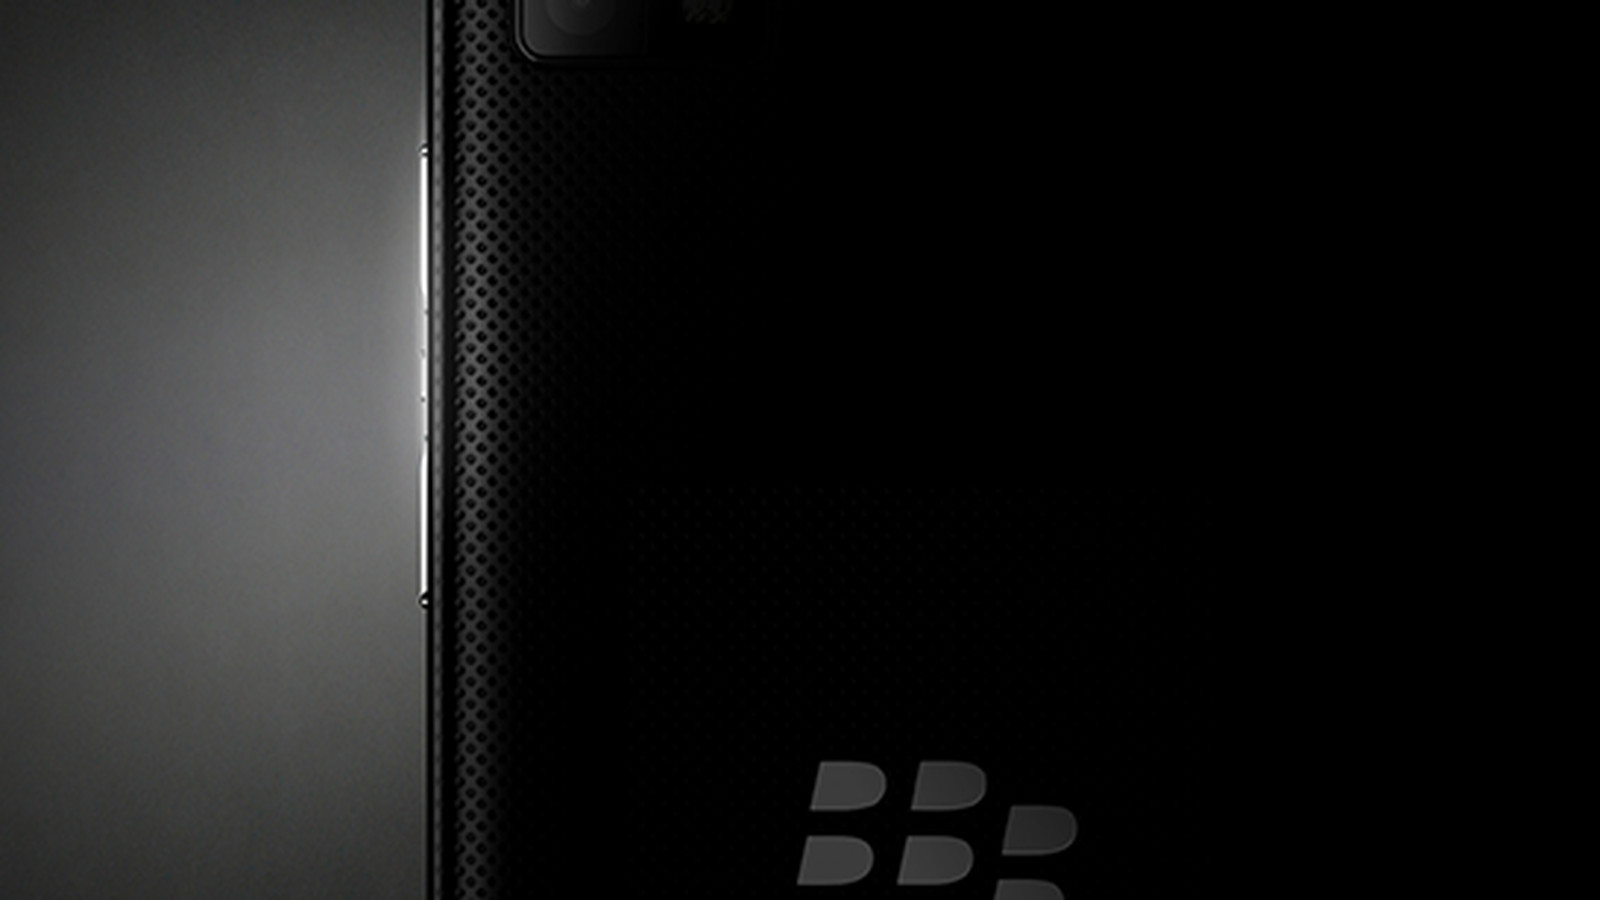 How Can I Talk My Grandpa Into Buying Me A Blackberry storm?